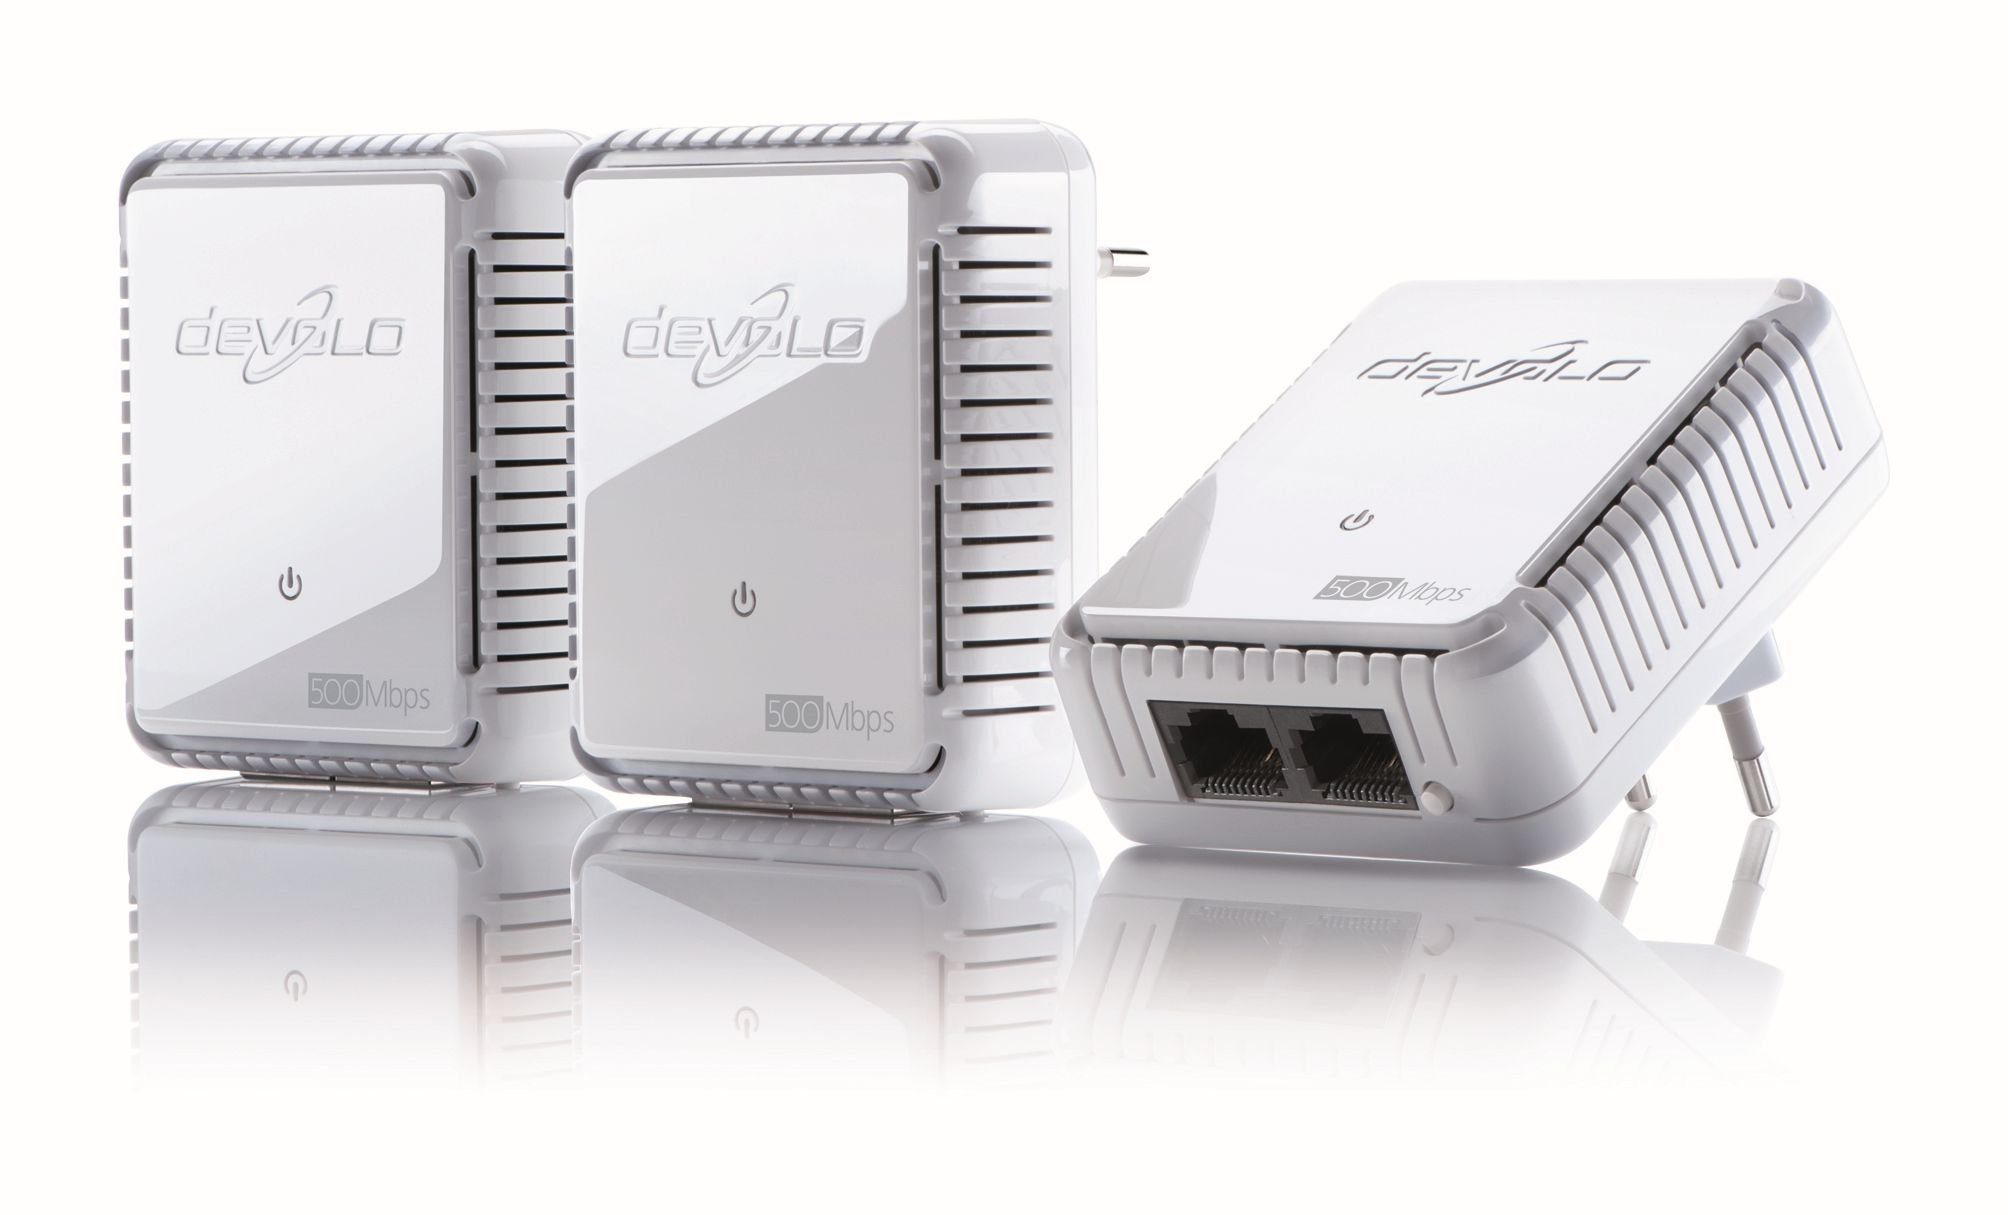 DEVOLO dLAN 500 duo Kit »Powerline 500Mbit, 2xLAN, Netzwerk«